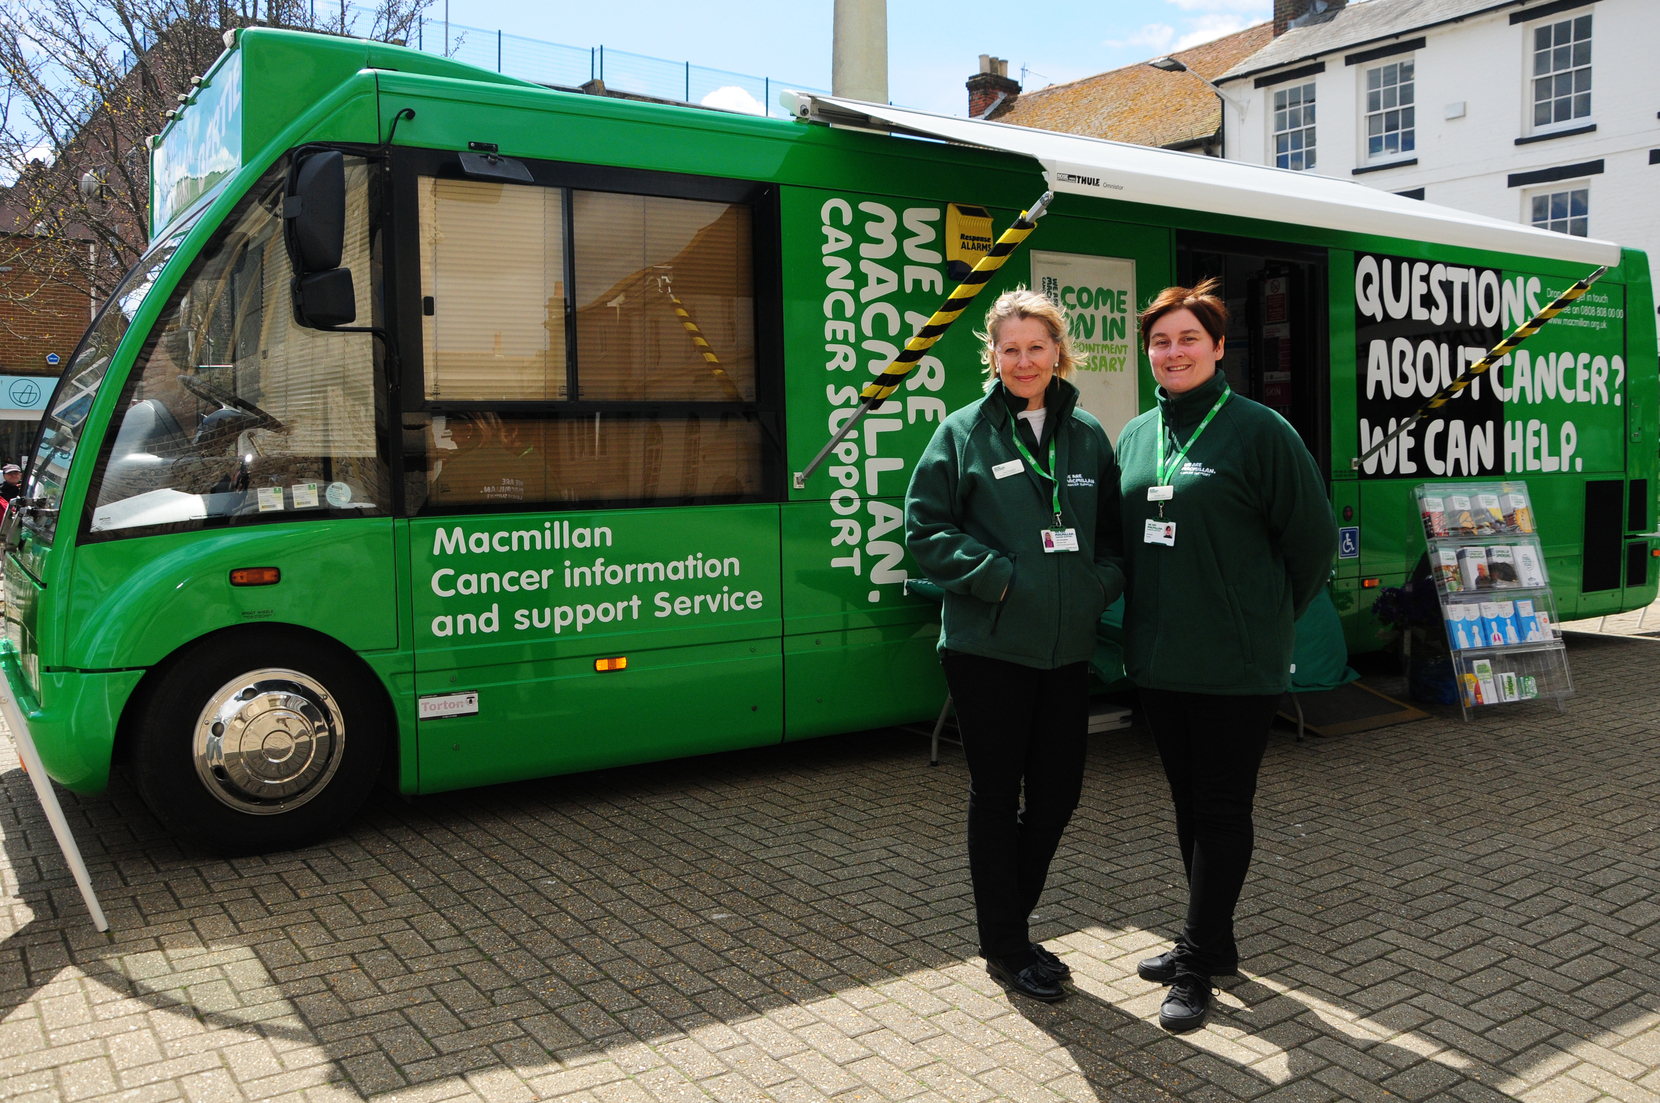 Macmillan Cancer Support Information Service in Harlow